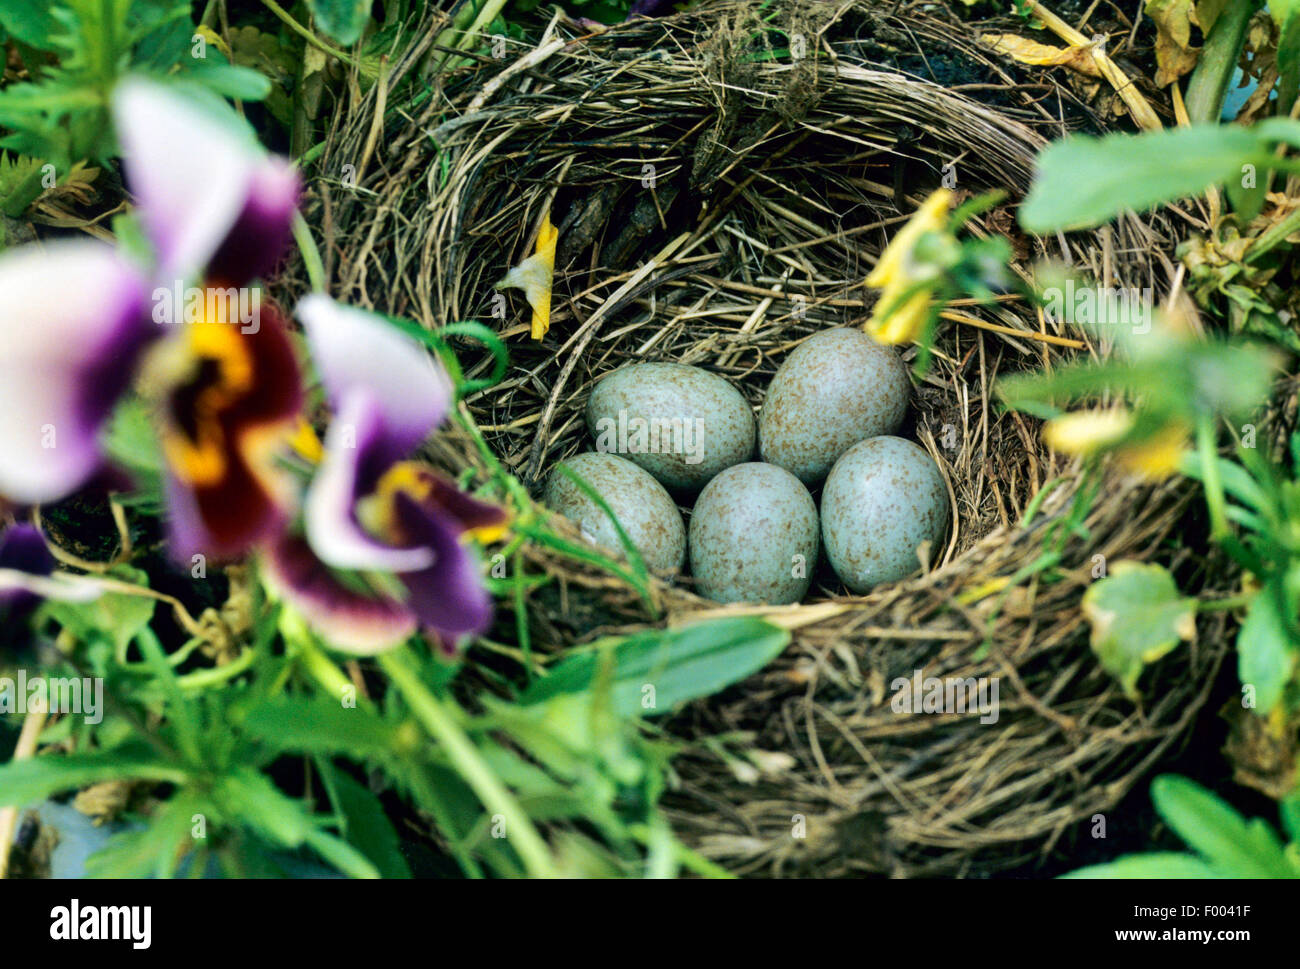 songbird egg in nest stockfotos songbird egg in nest bilder alamy. Black Bedroom Furniture Sets. Home Design Ideas